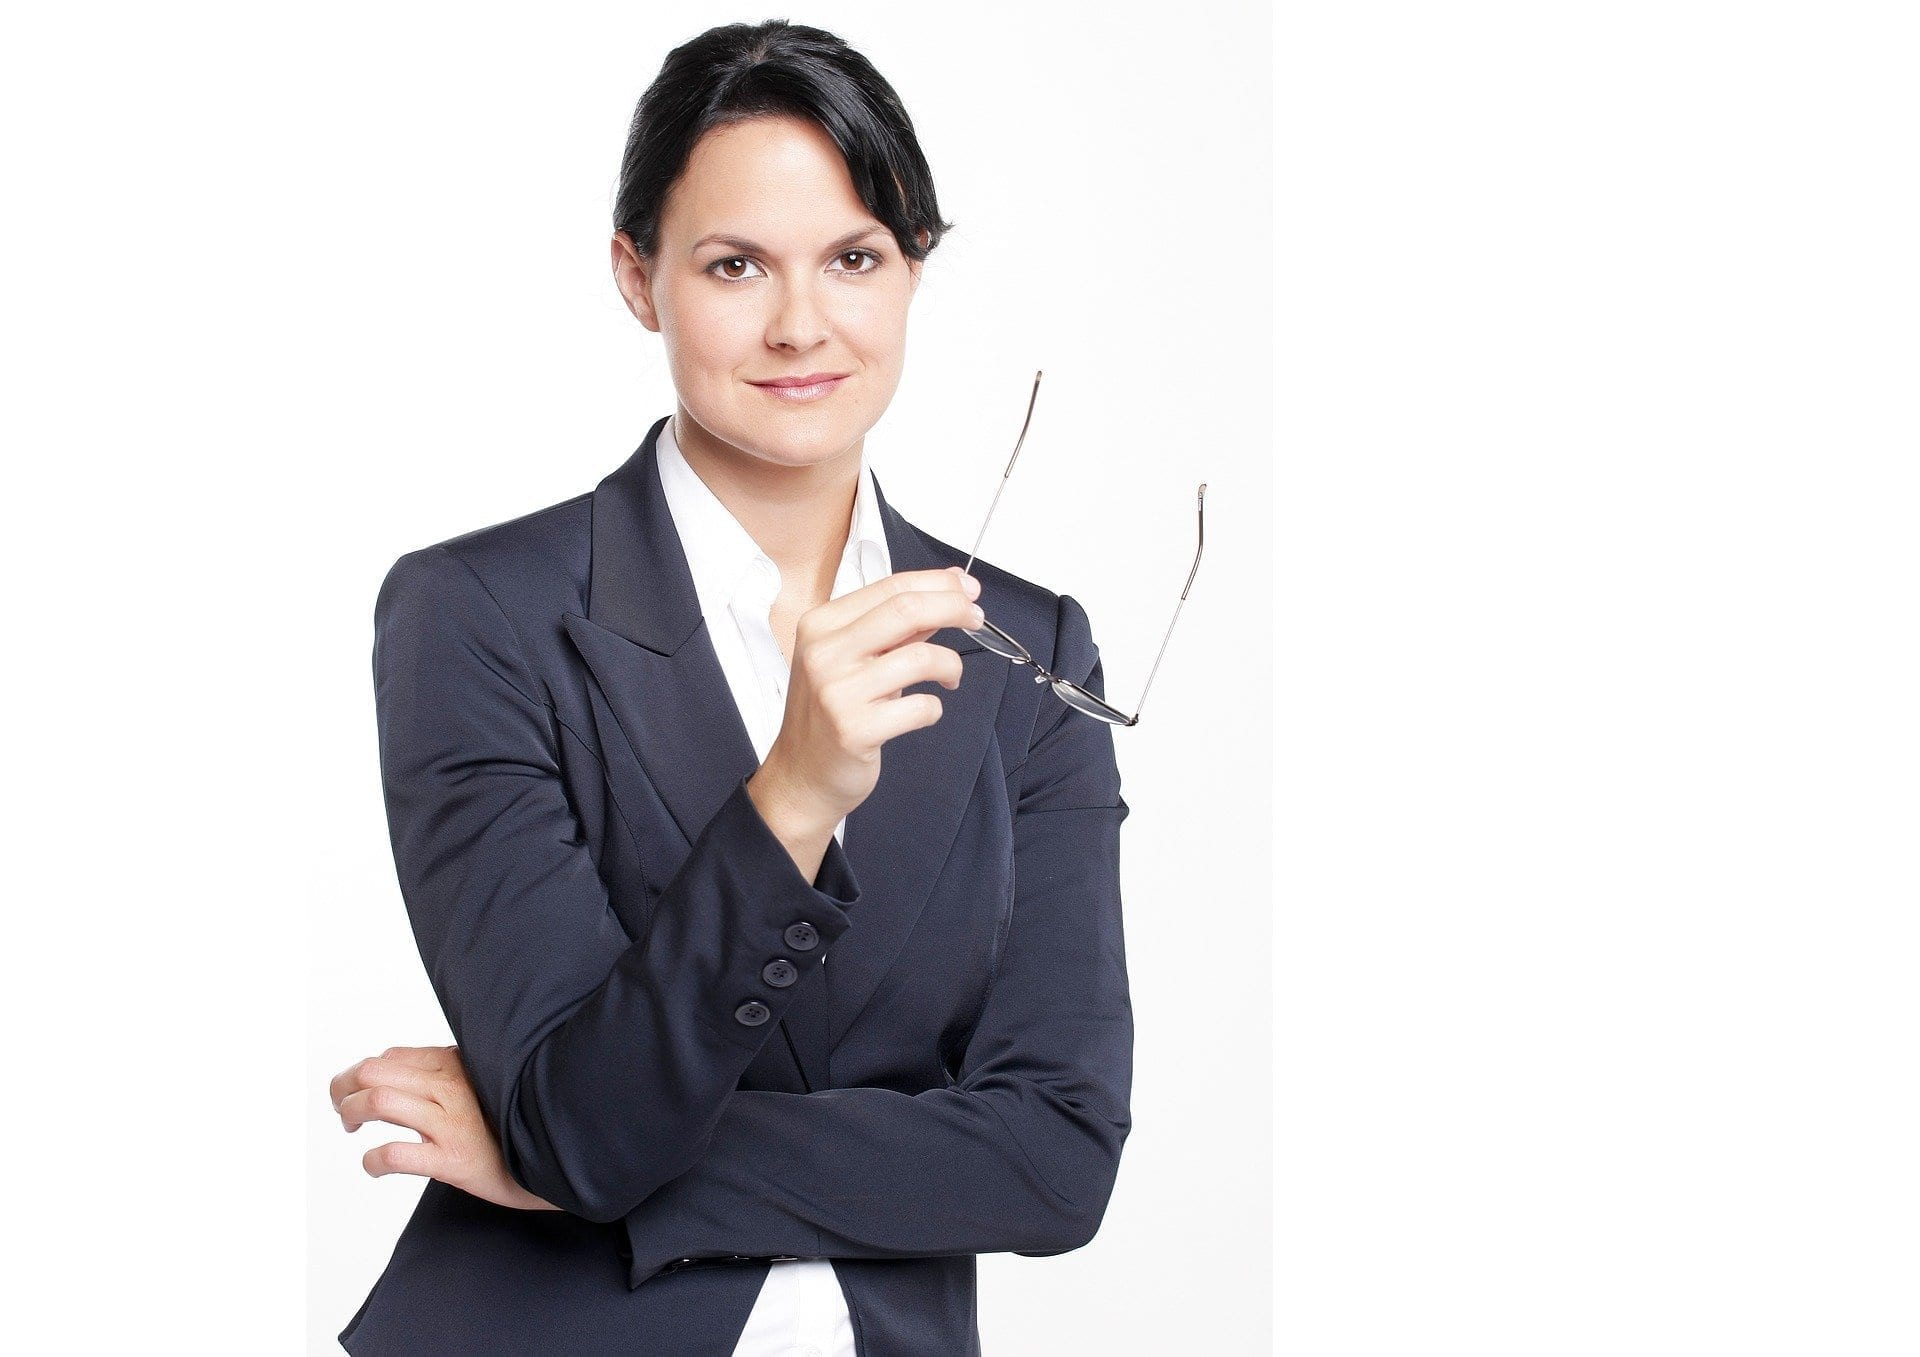 a photo of a business person